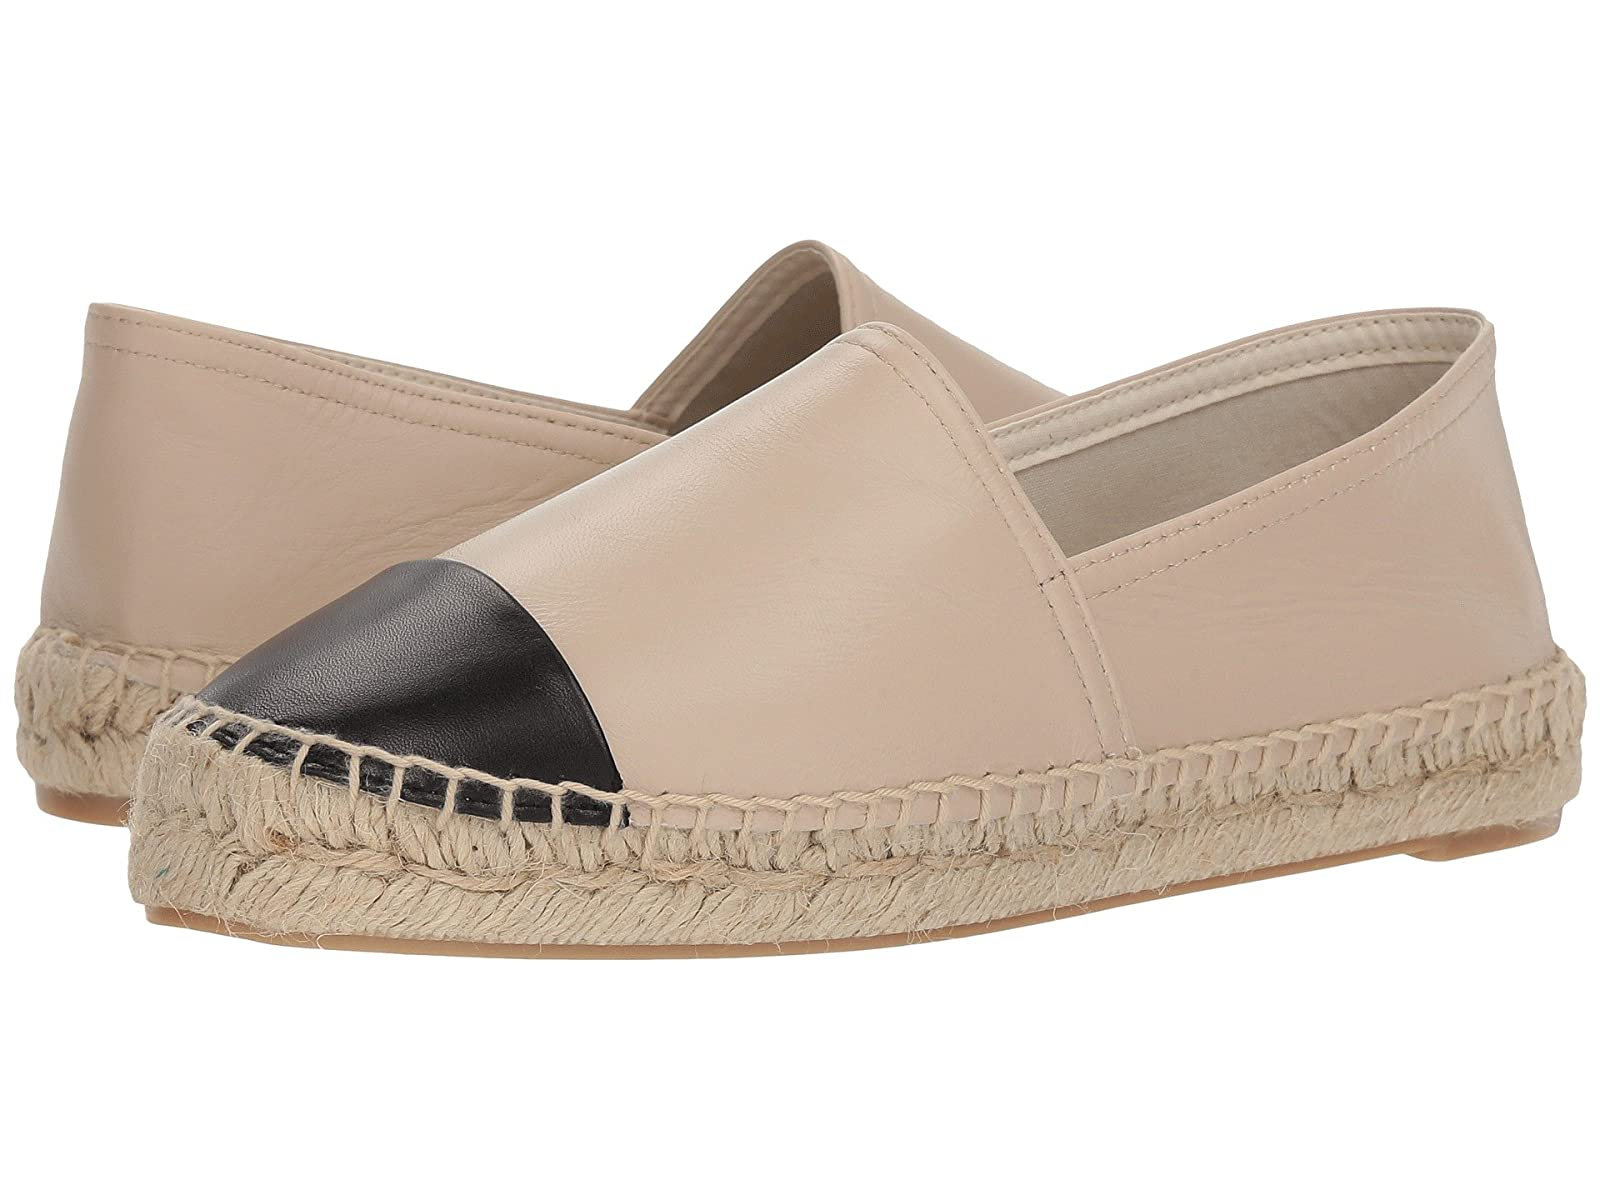 ALDO ConeAtmospheric grades have affordable shoes